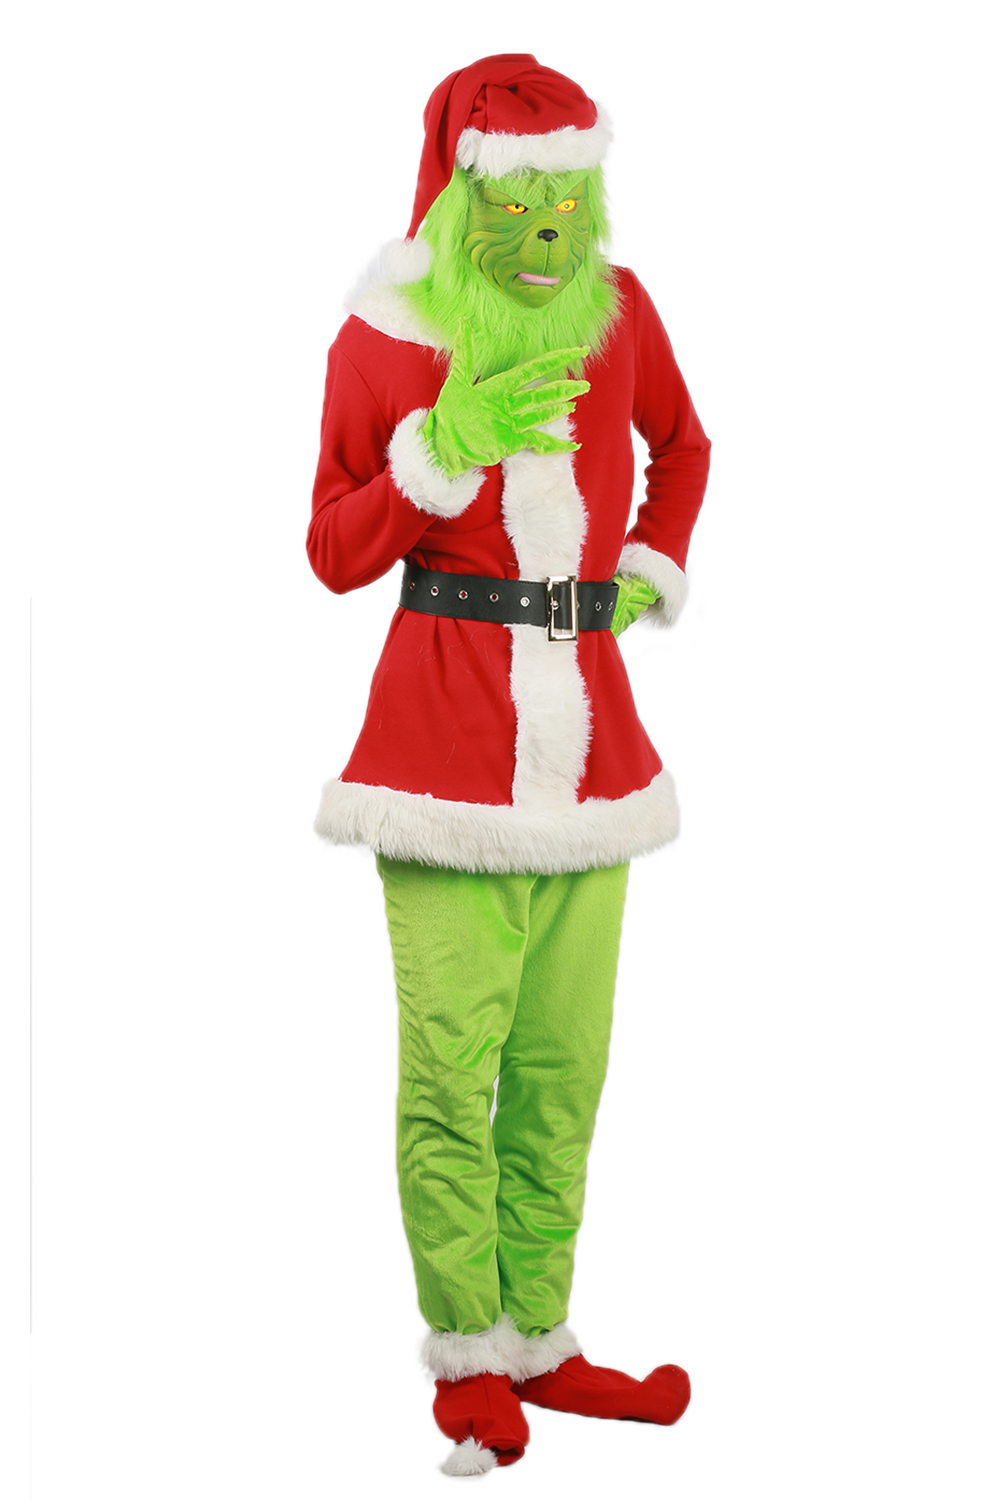 How The Grinch Stole Christmas Costumes.Coslive Original Grinch Costume Movie How The Grinch Stole Christmas Cosplay Outfit Full Set